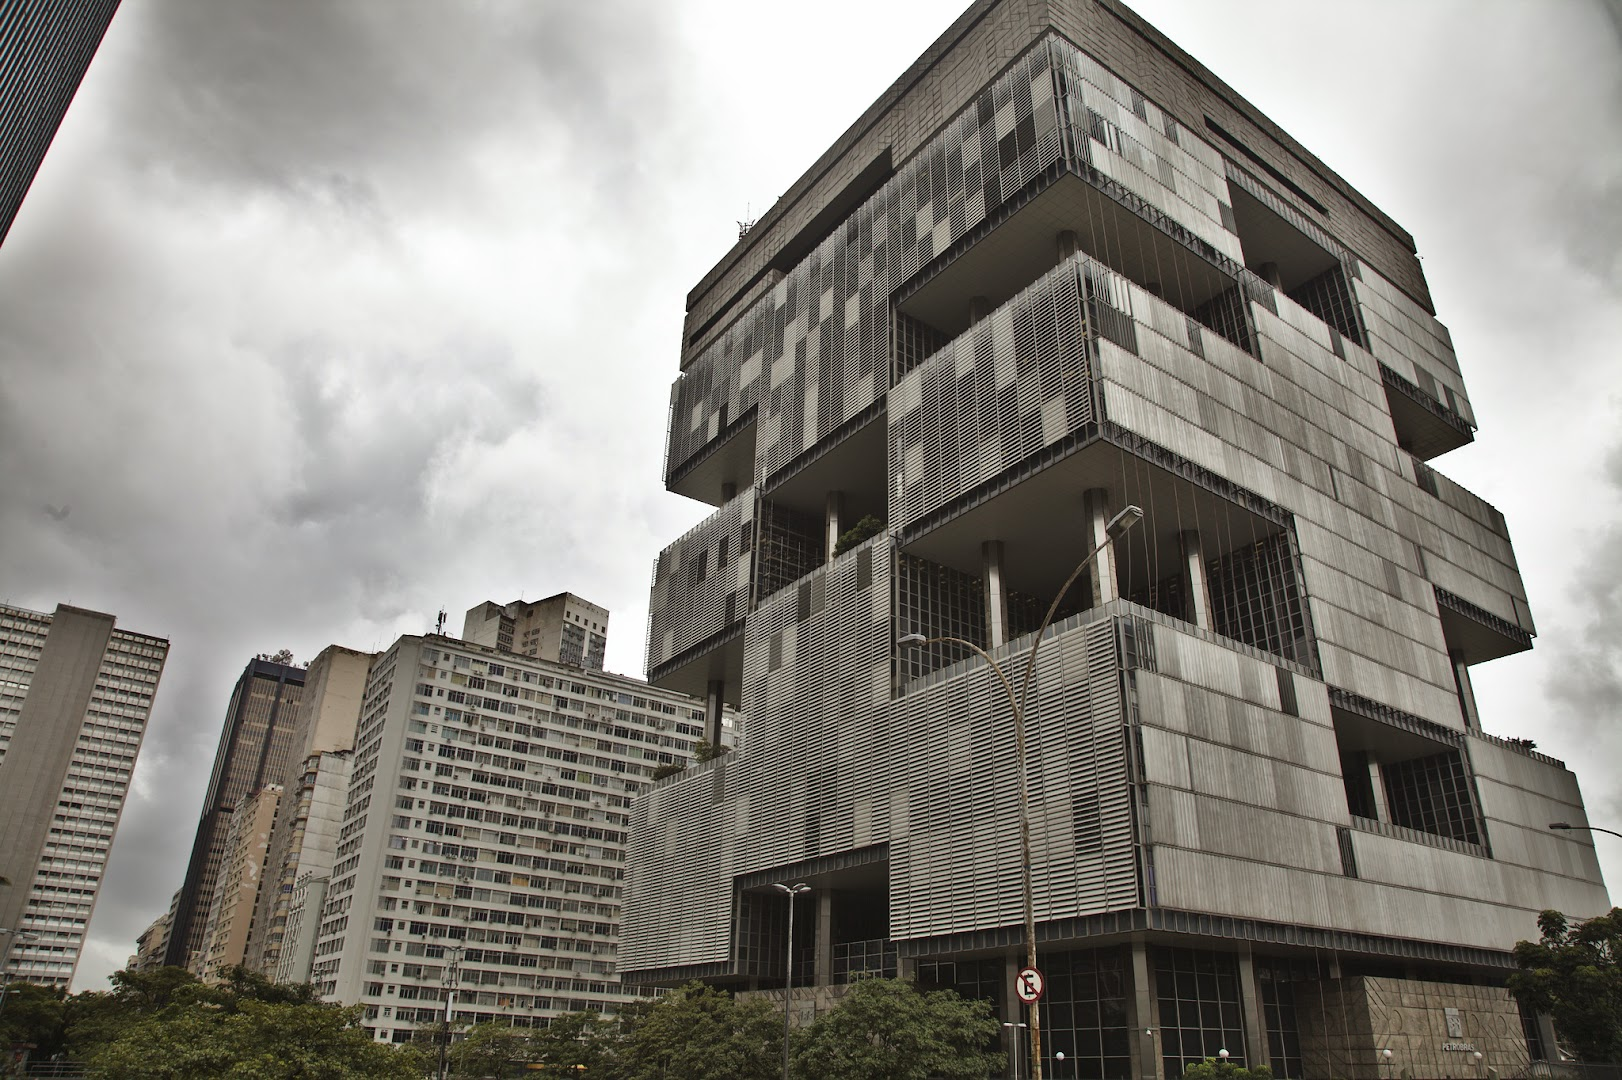 Petrobras headquarters are in this funny building